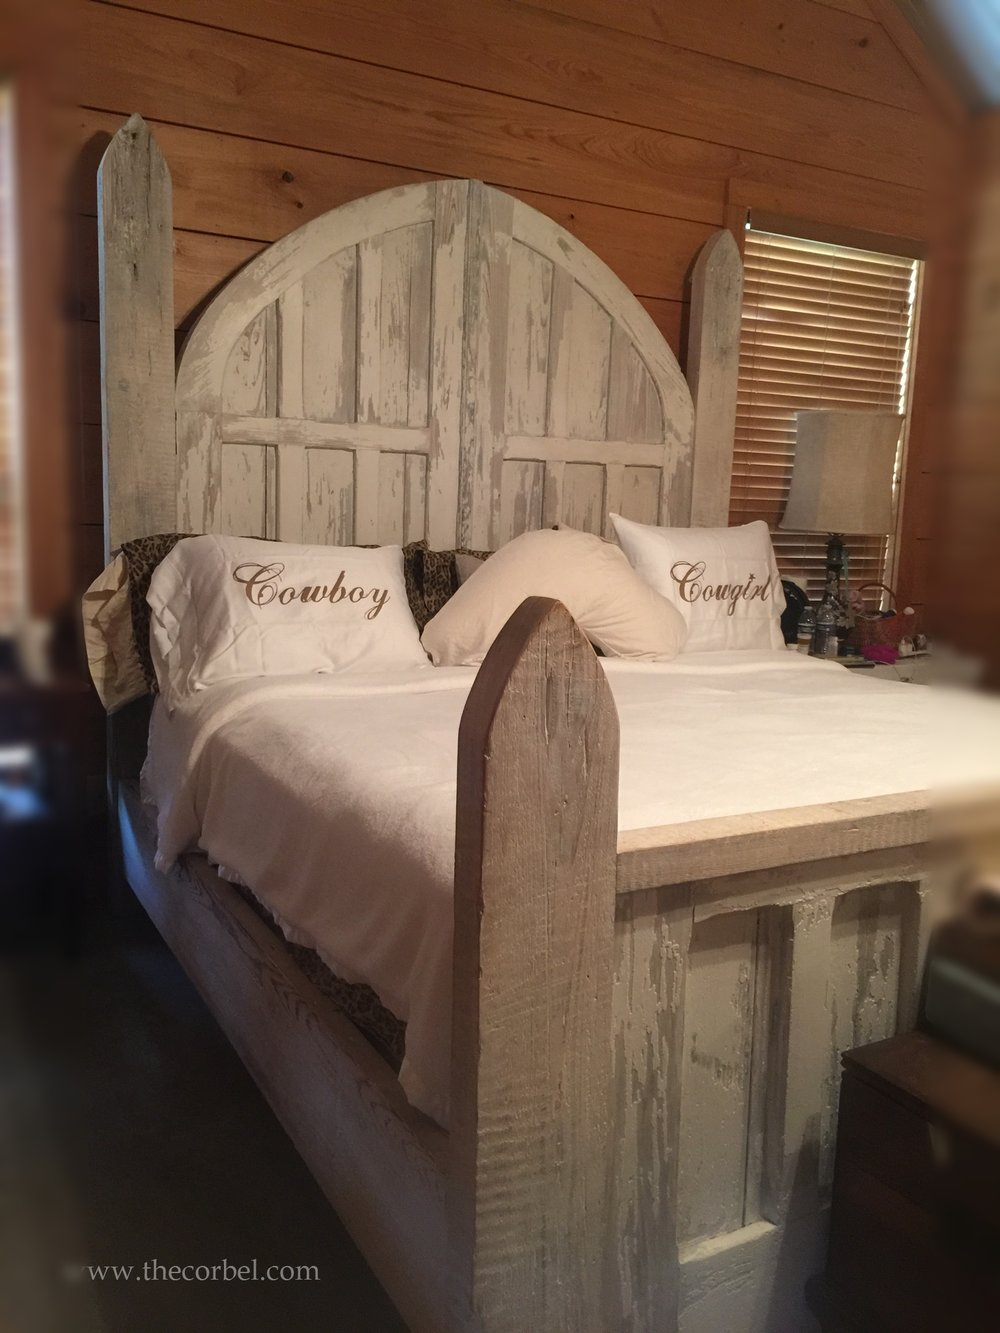 antique door bed WM.jpg & Blog - The Corbel